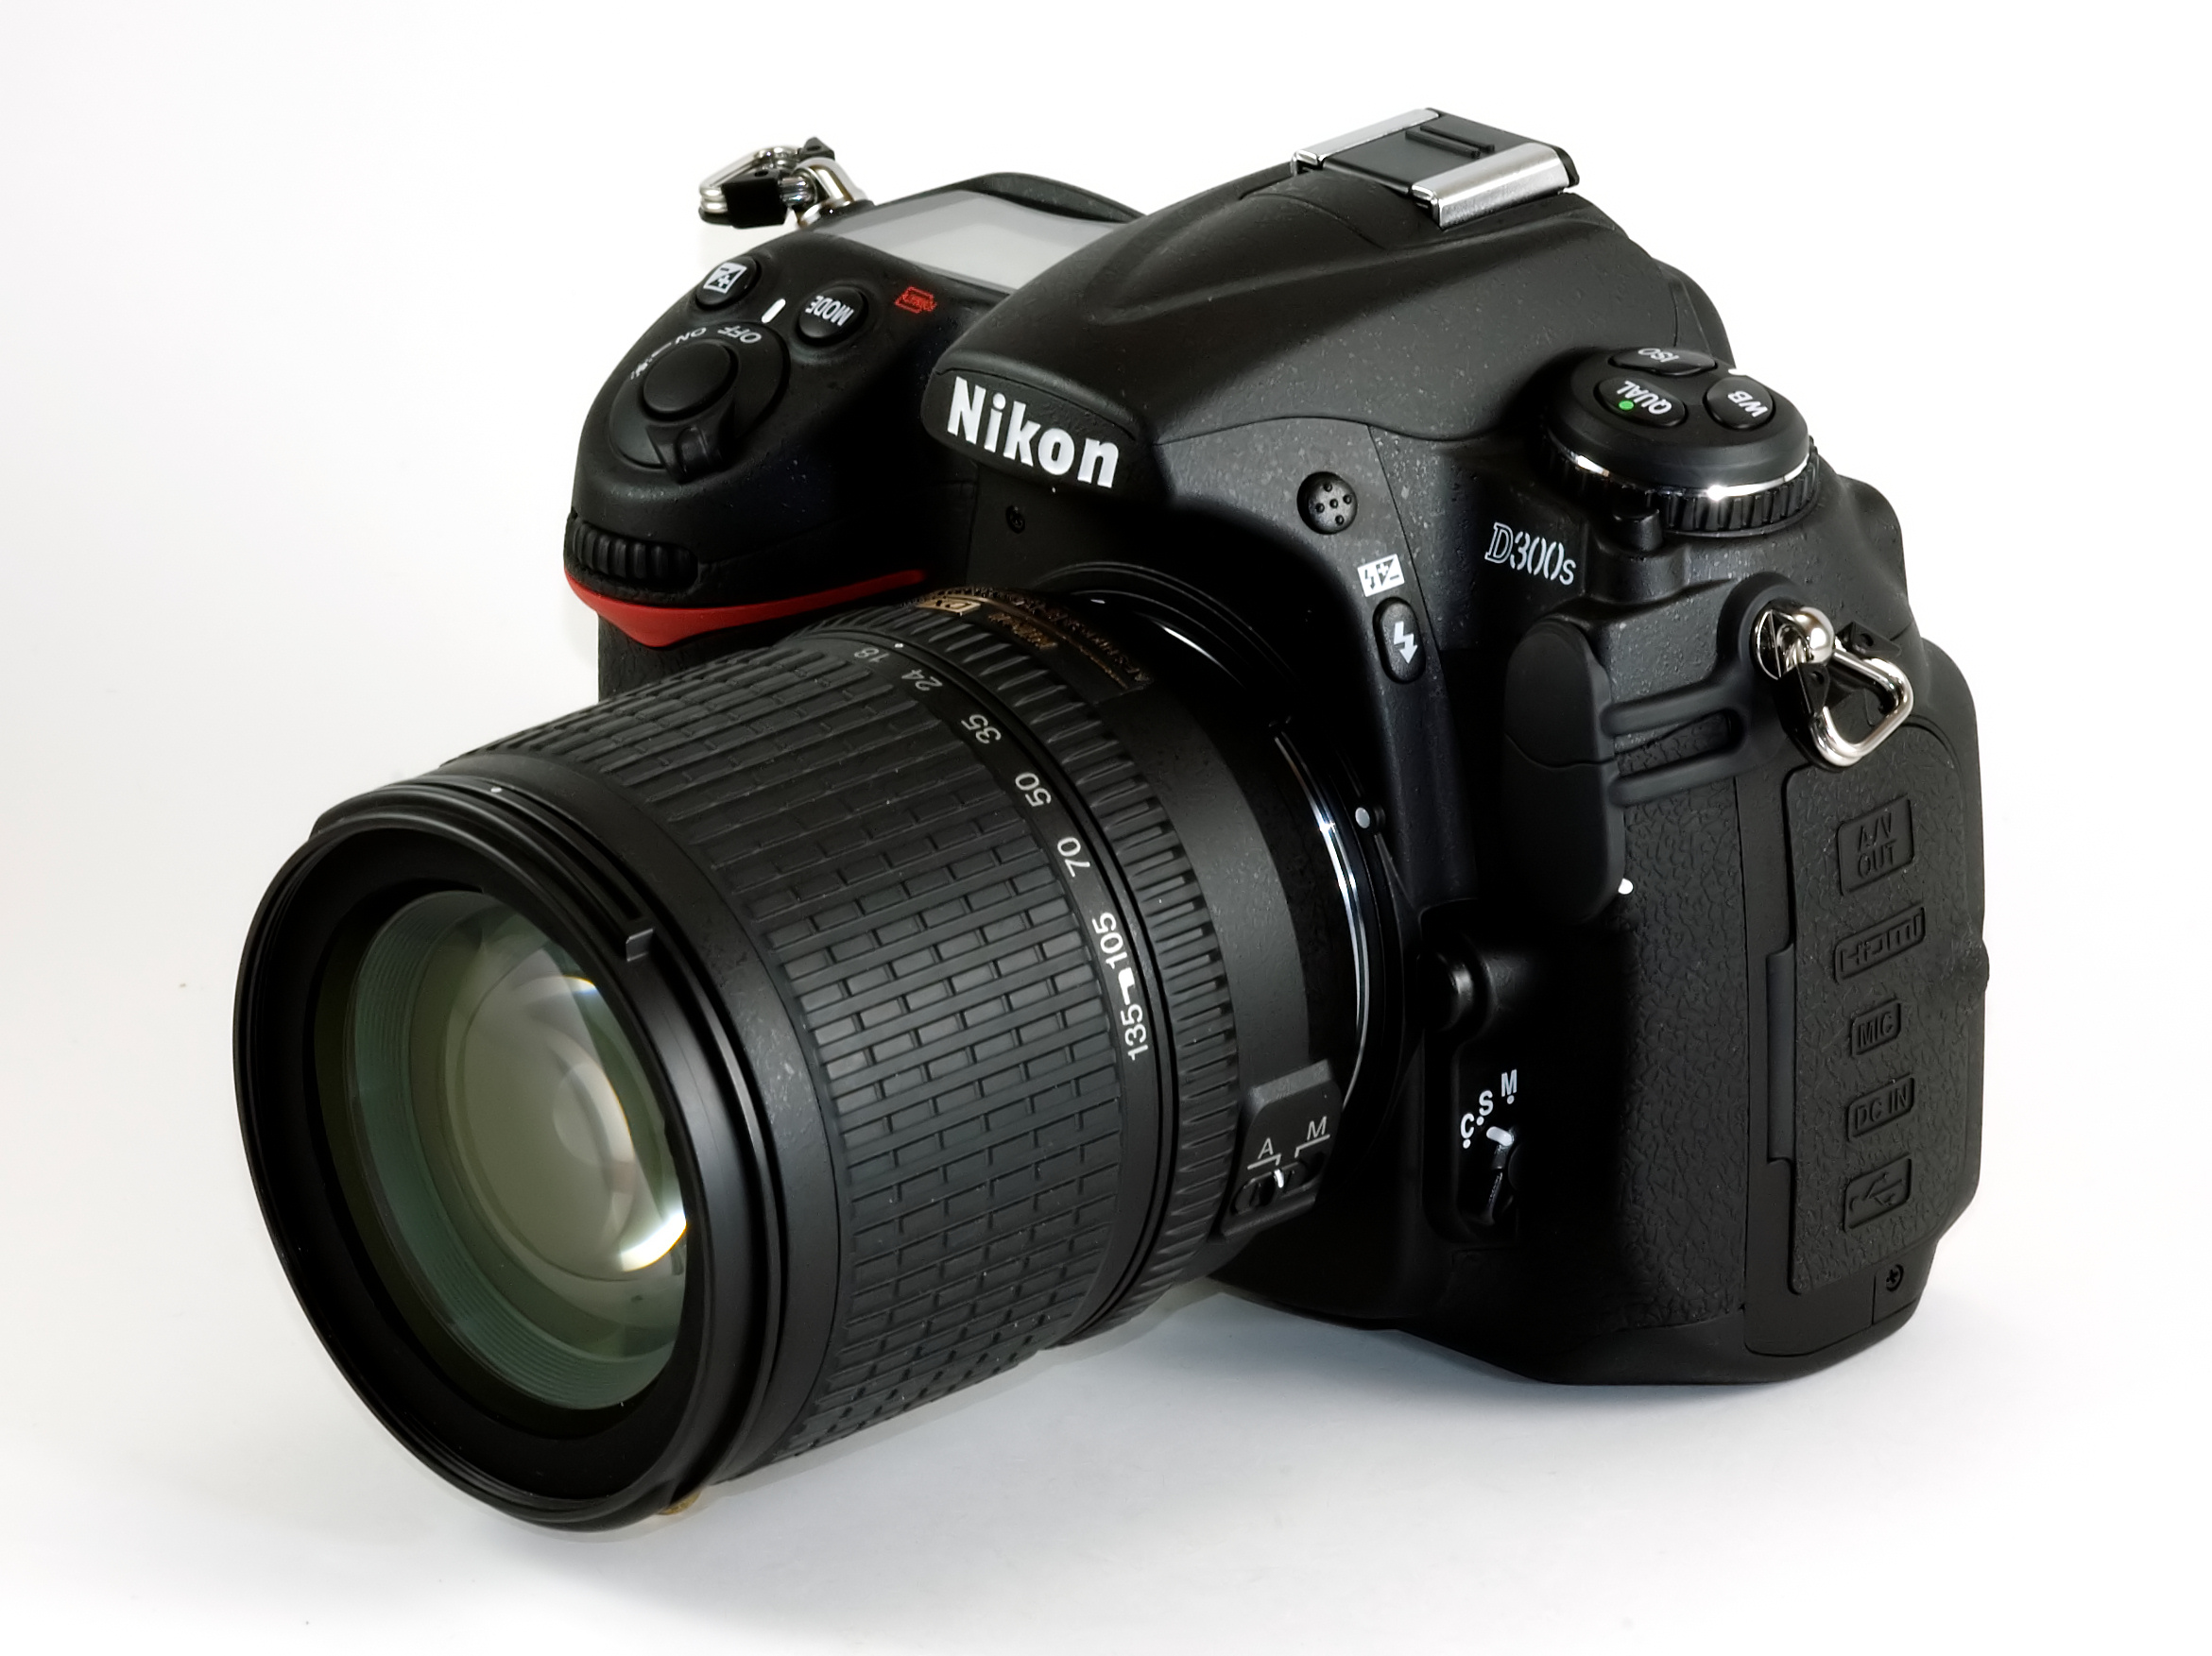 Nikon SLR D300s 12 3 MP - Cameras, megapixels - 12.3 Megapixels, built in flash - Yes, lcd screen size - 3 inch